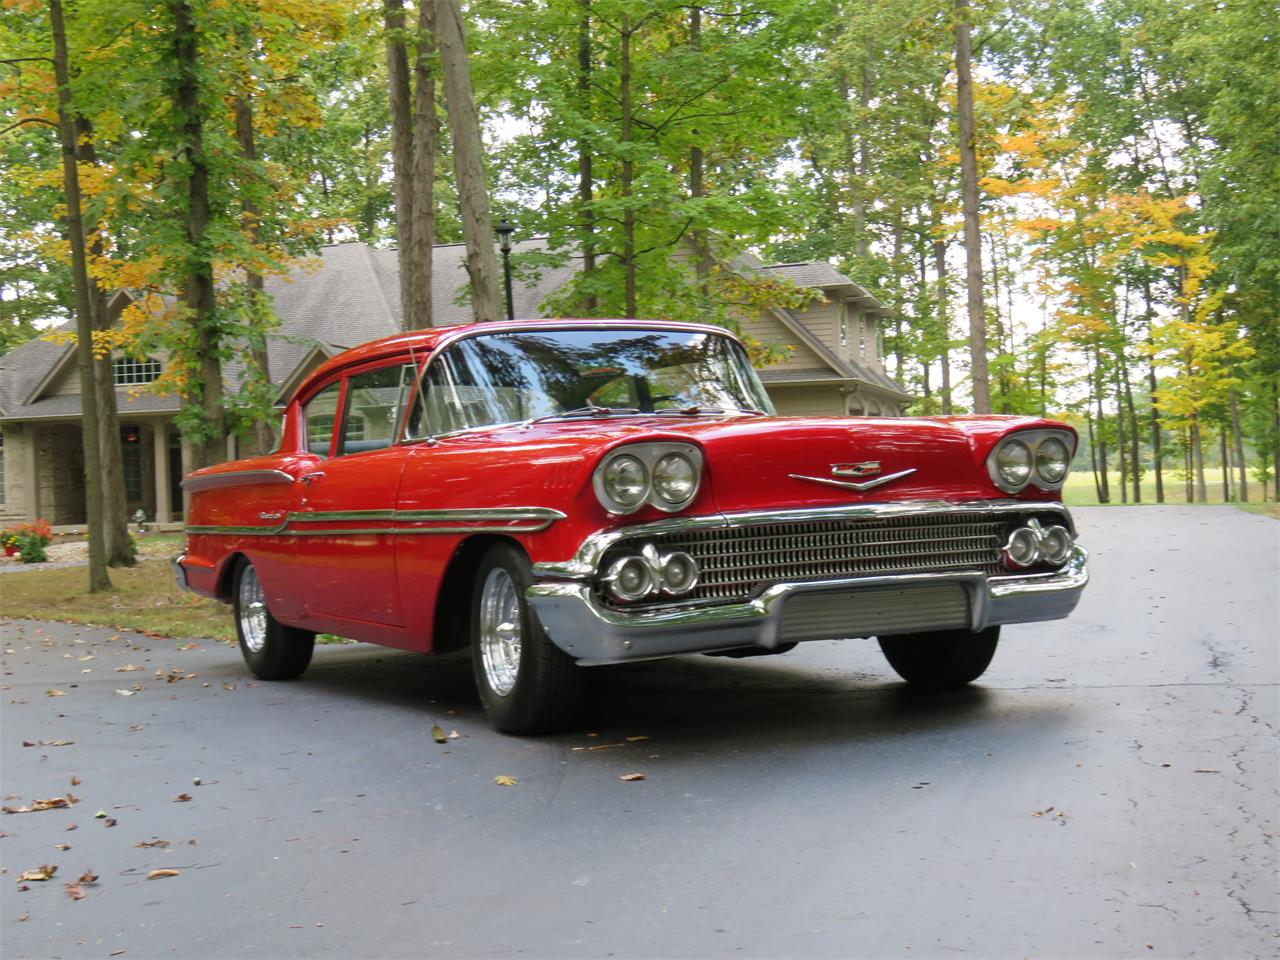 Large Picture of 1958 Chevrolet Biscayne Auction Vehicle Offered by Earlywine Auctions - N5K4